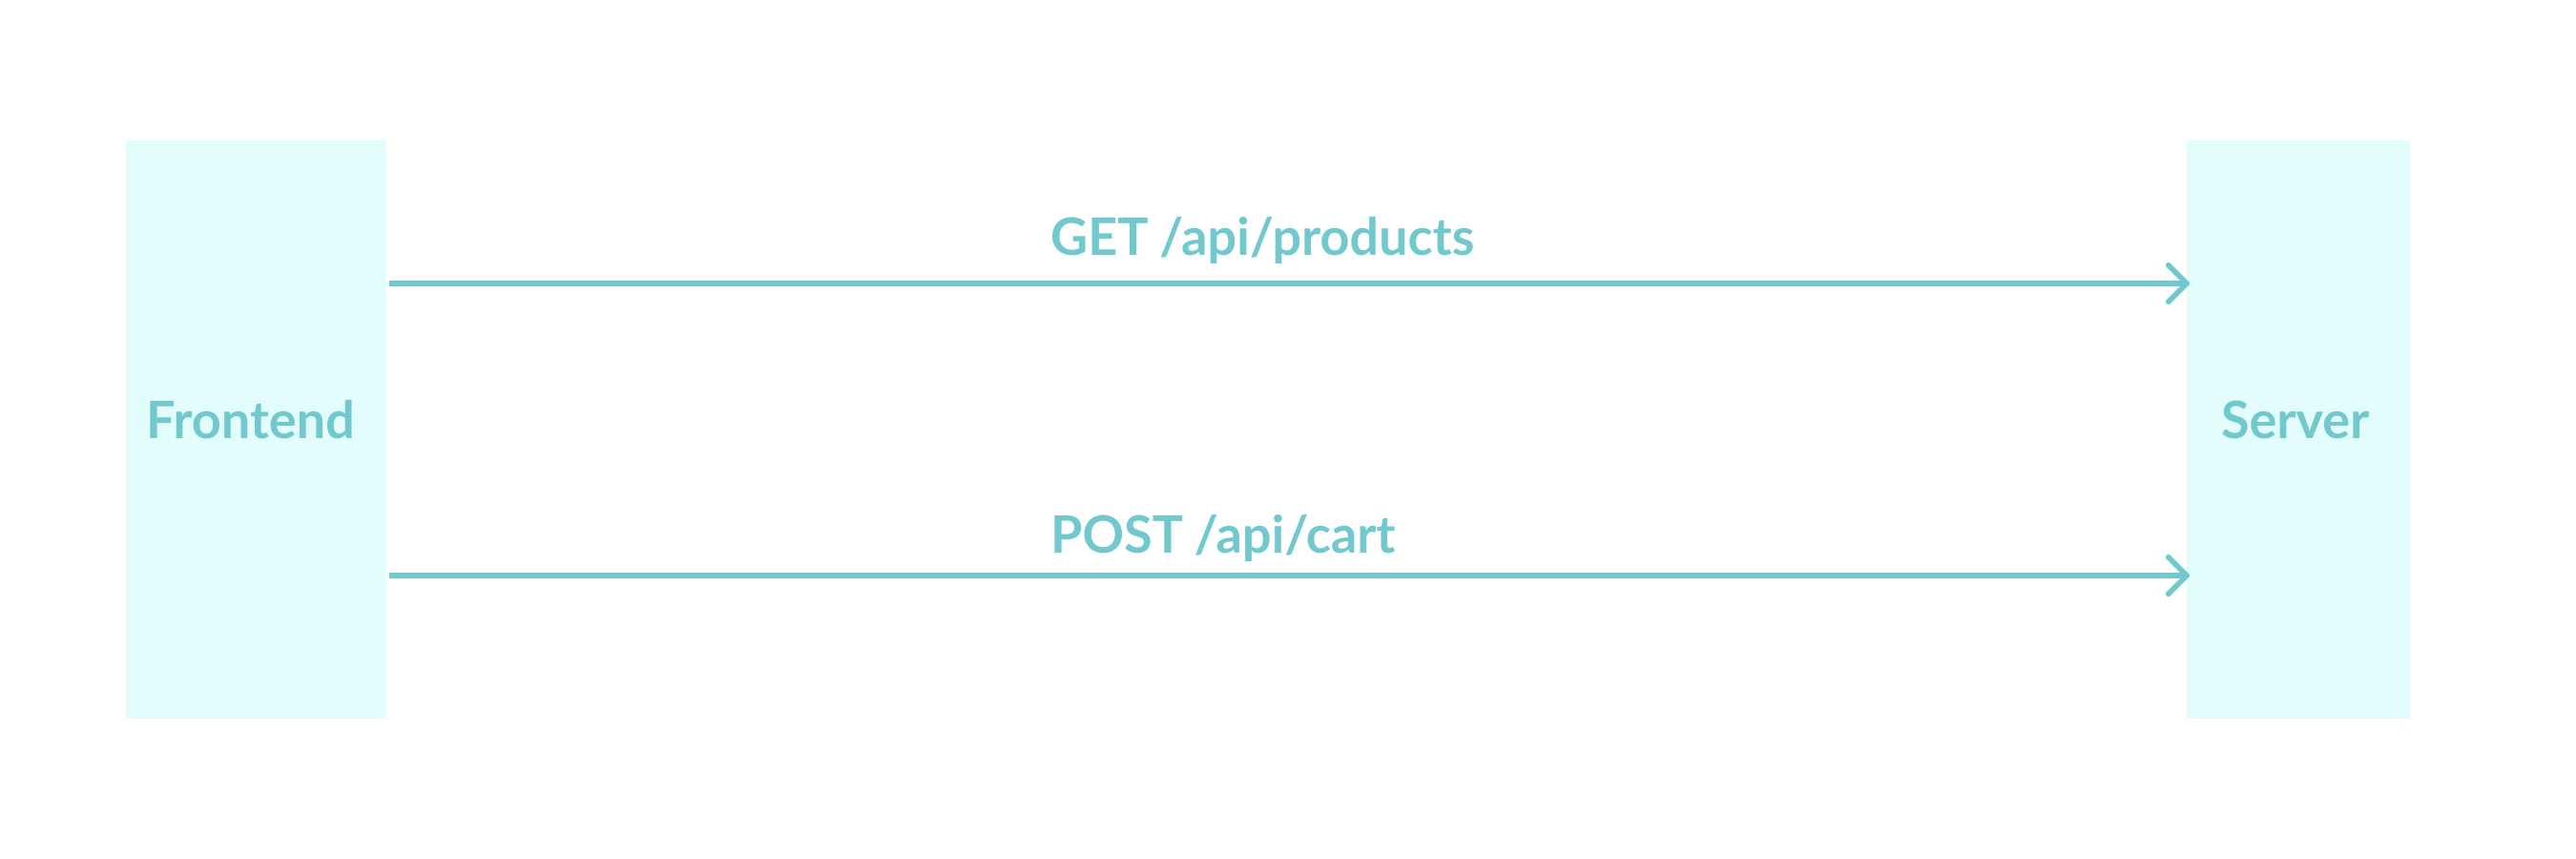 Organizing HTTP requests using the API module pattern